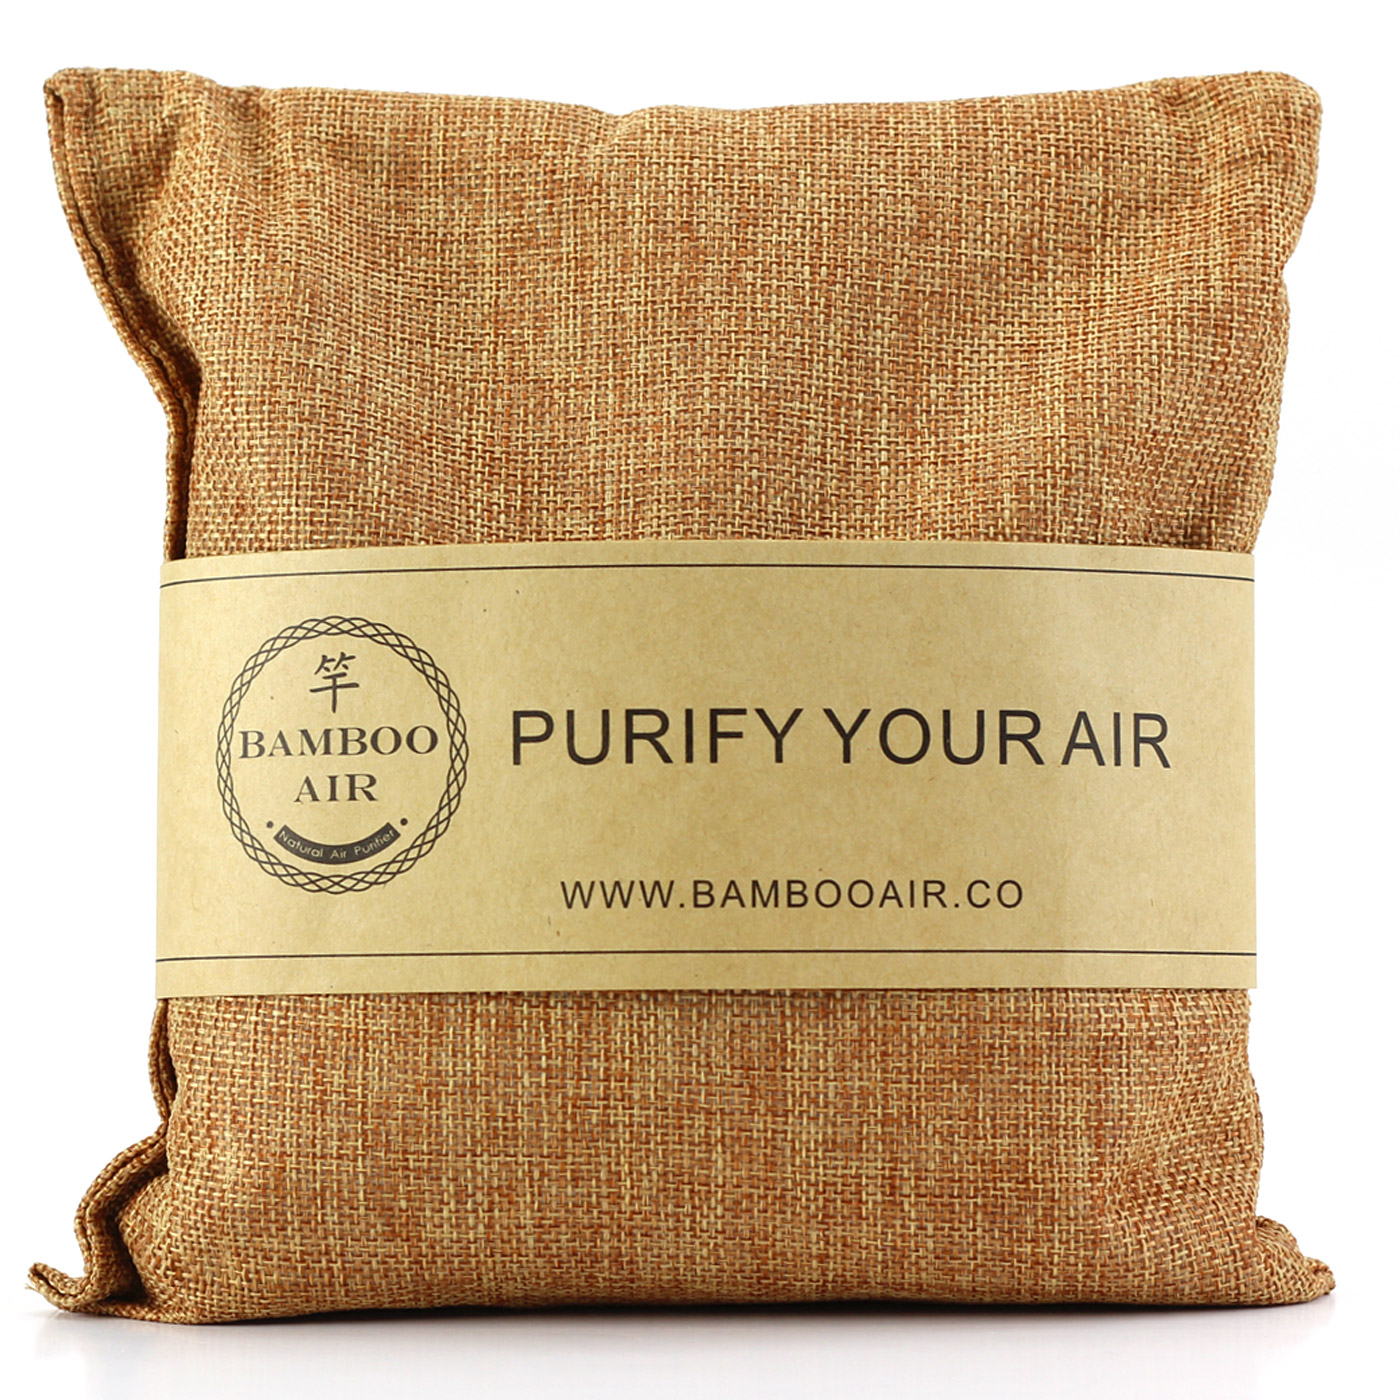 500g Bamboo Charcoal Air Purifier Bag  Natural Air Freshener Odor Absorber  Eliminator U0026 Deodorizer Removes